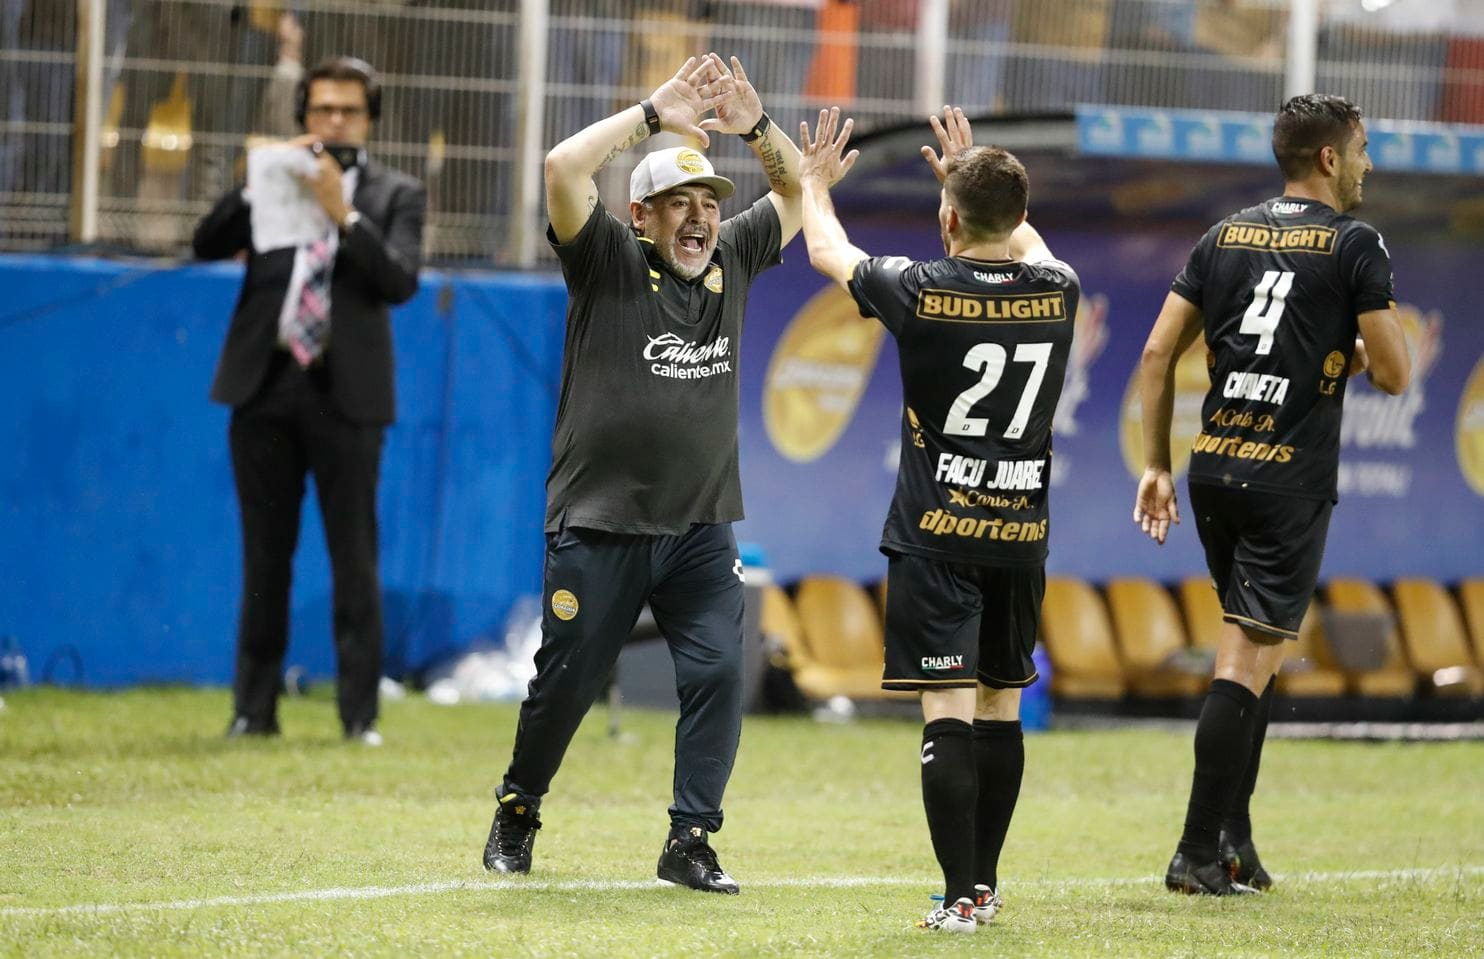 'We don't want Maradona': Soccer legend gets a mixed welcome in Mexico's Sinaloa